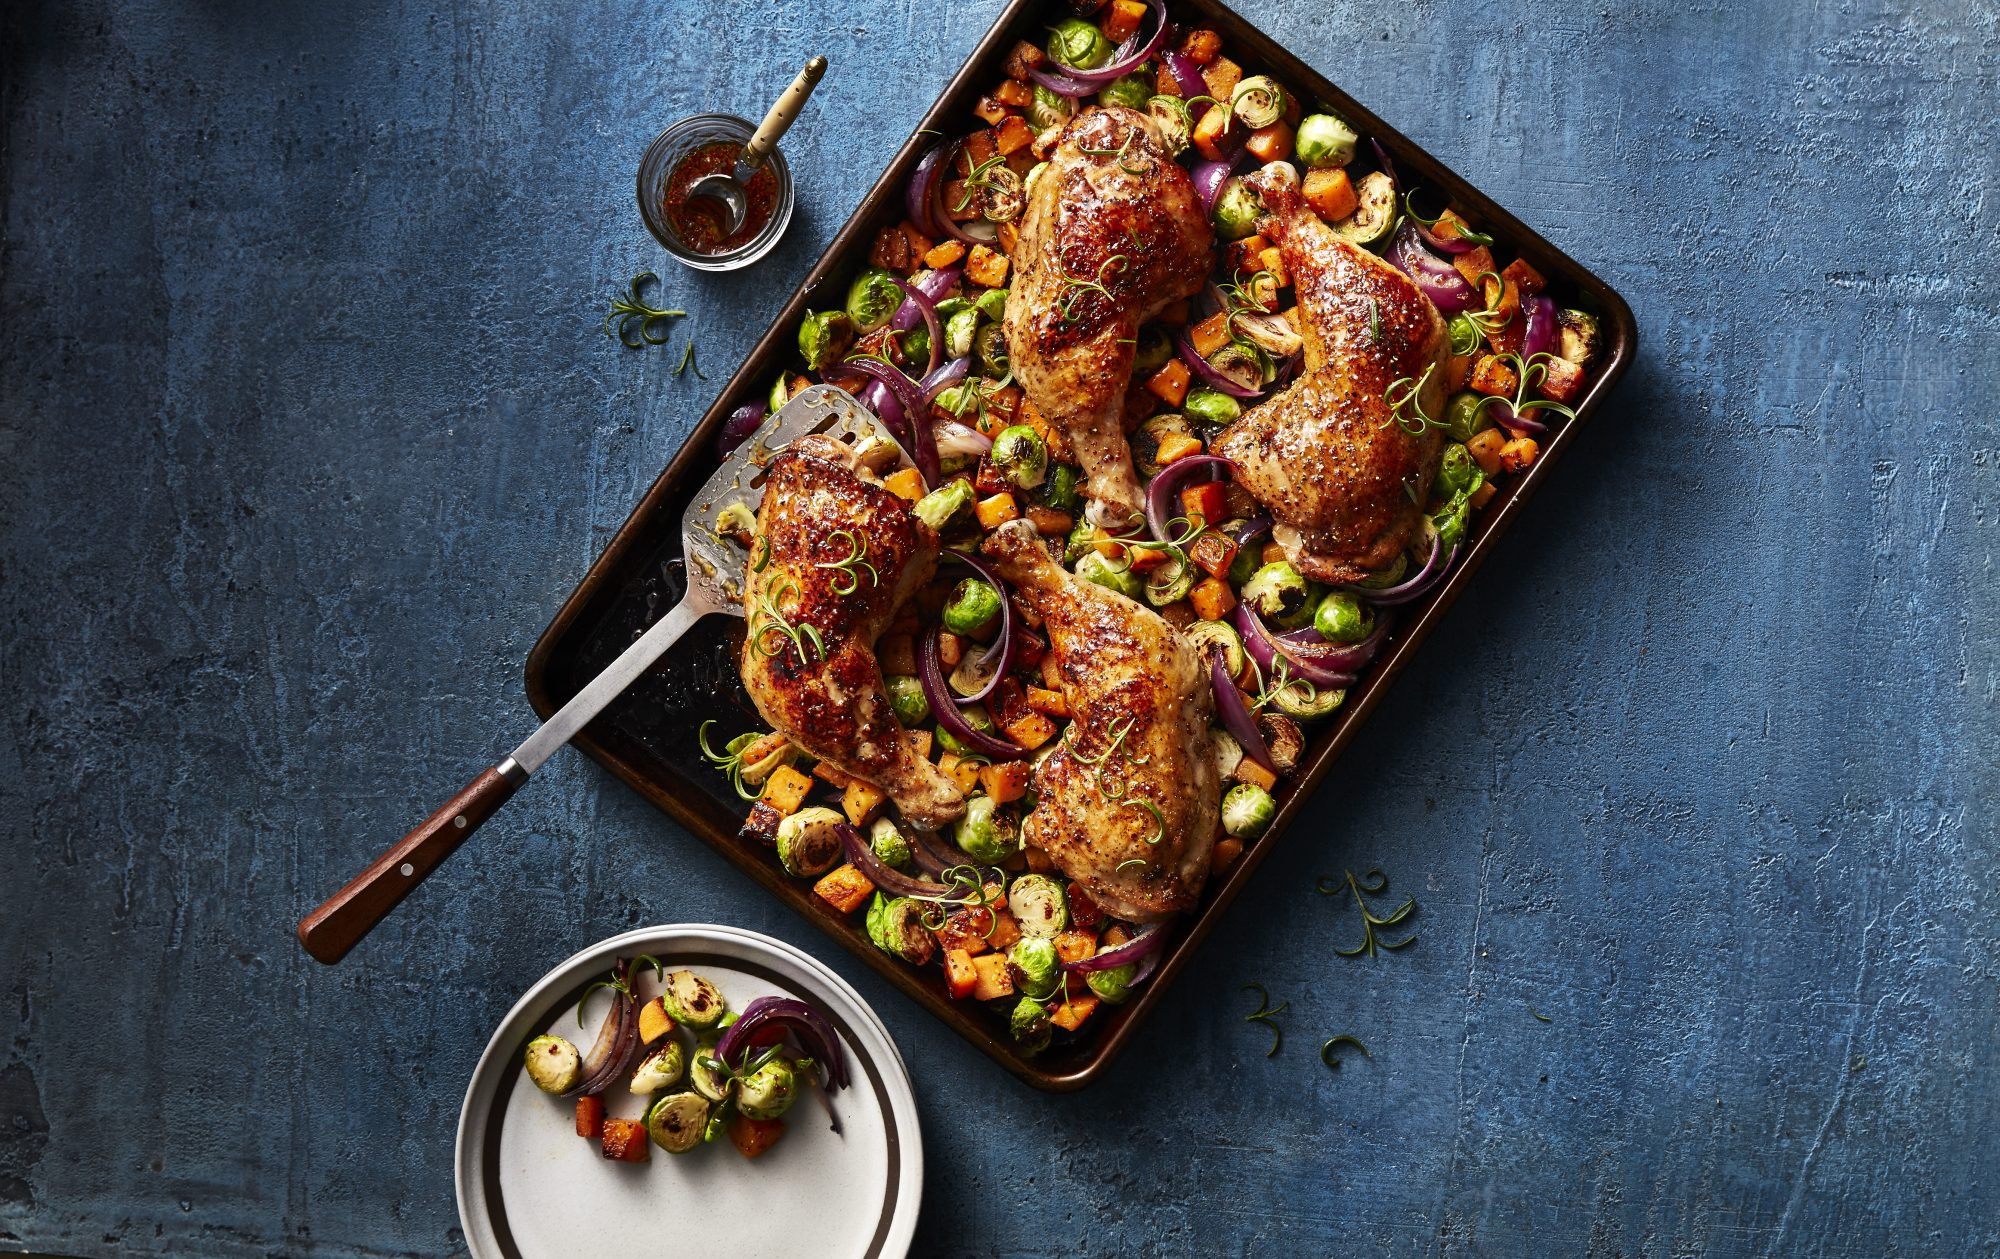 Roasted Rosemary Chicken Quarters with Butternut Squash and Brussels Sprouts image